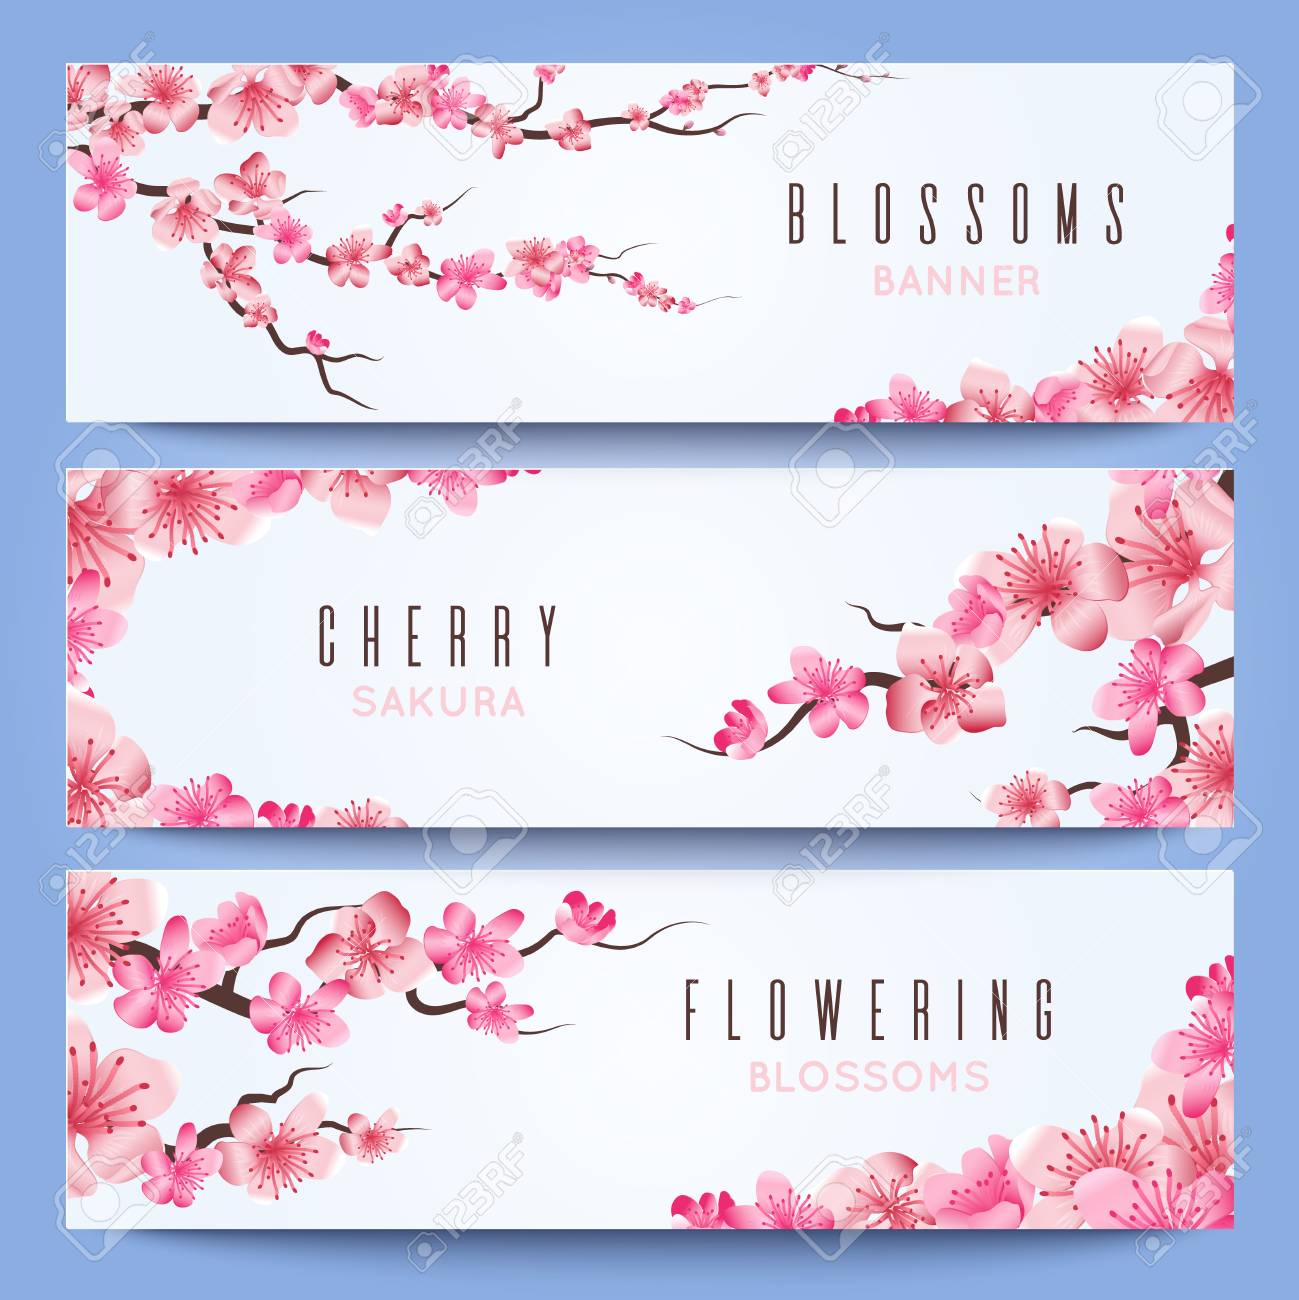 Wedding Banners Template With Spring Japan Sakura Cherry Blossom